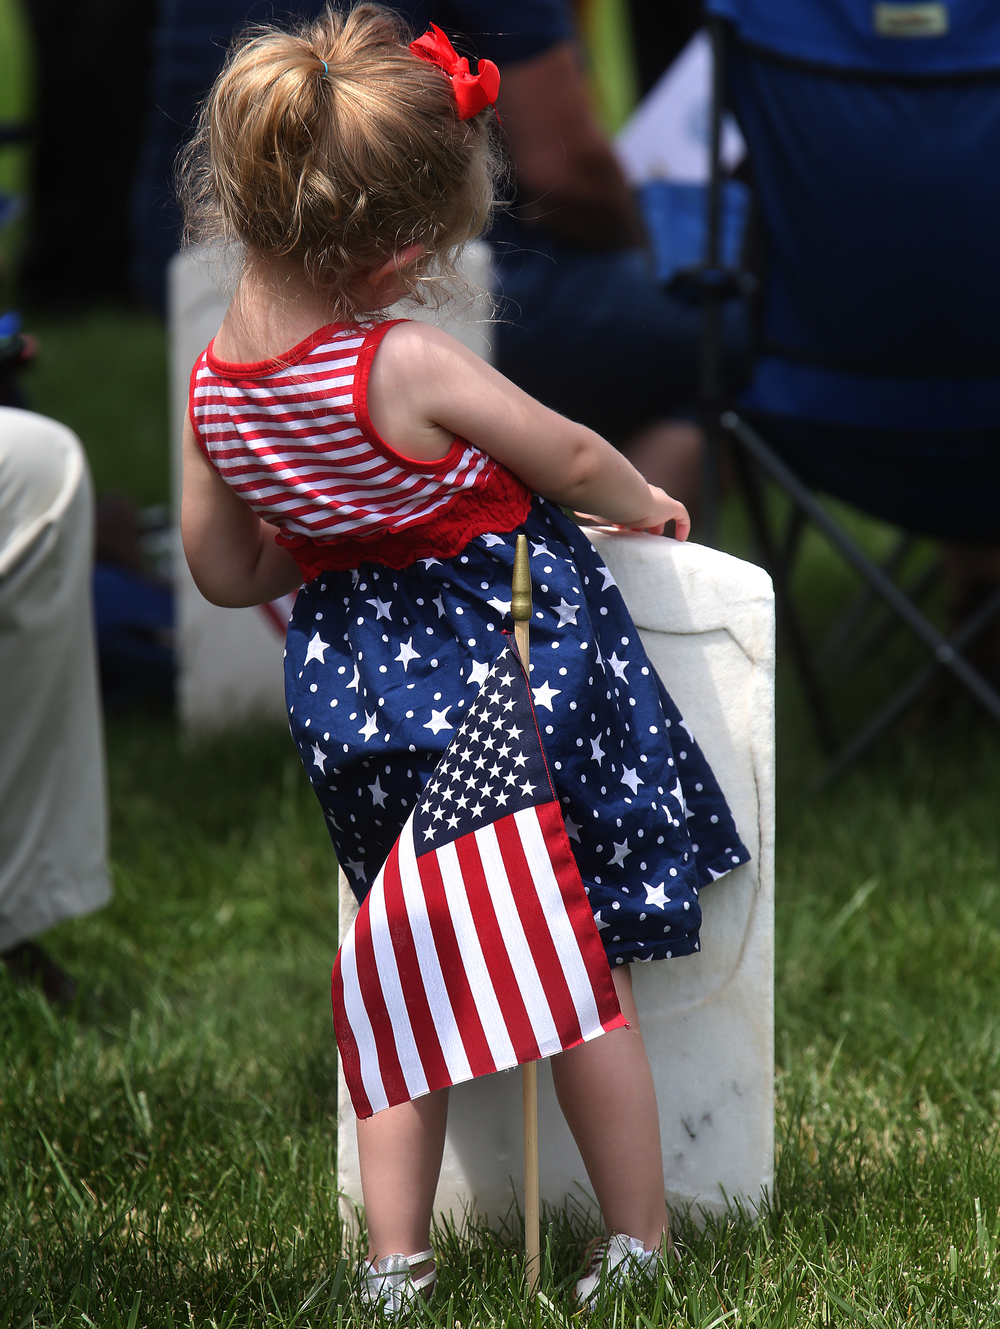 One youngster could be seen wearing a very patriotic dress fitting the occasion of Memorial Day as she balanced against a headstone during the ceremony. David Spencer/The State Journal-Register